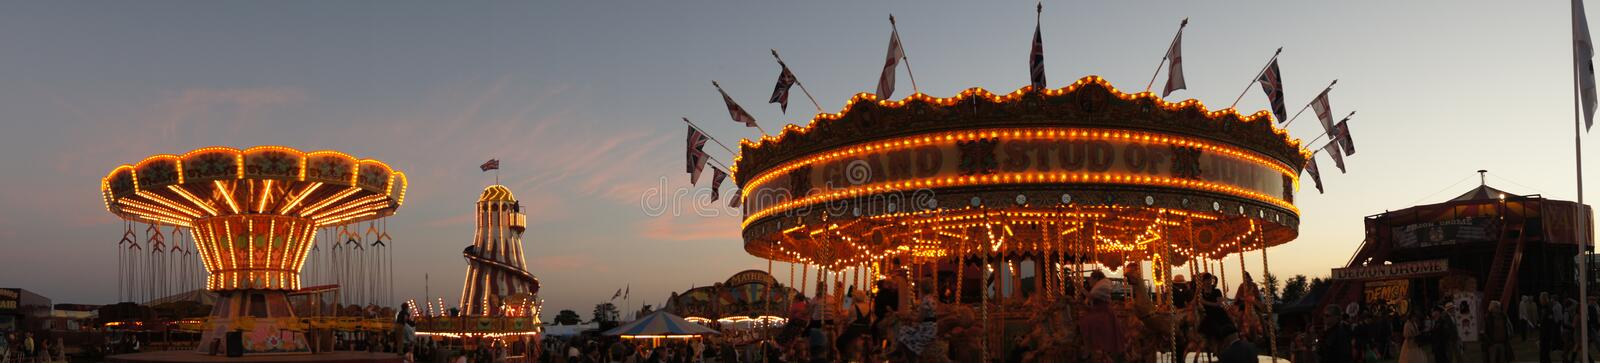 Panoramic night time view of a traditional funfair stock image